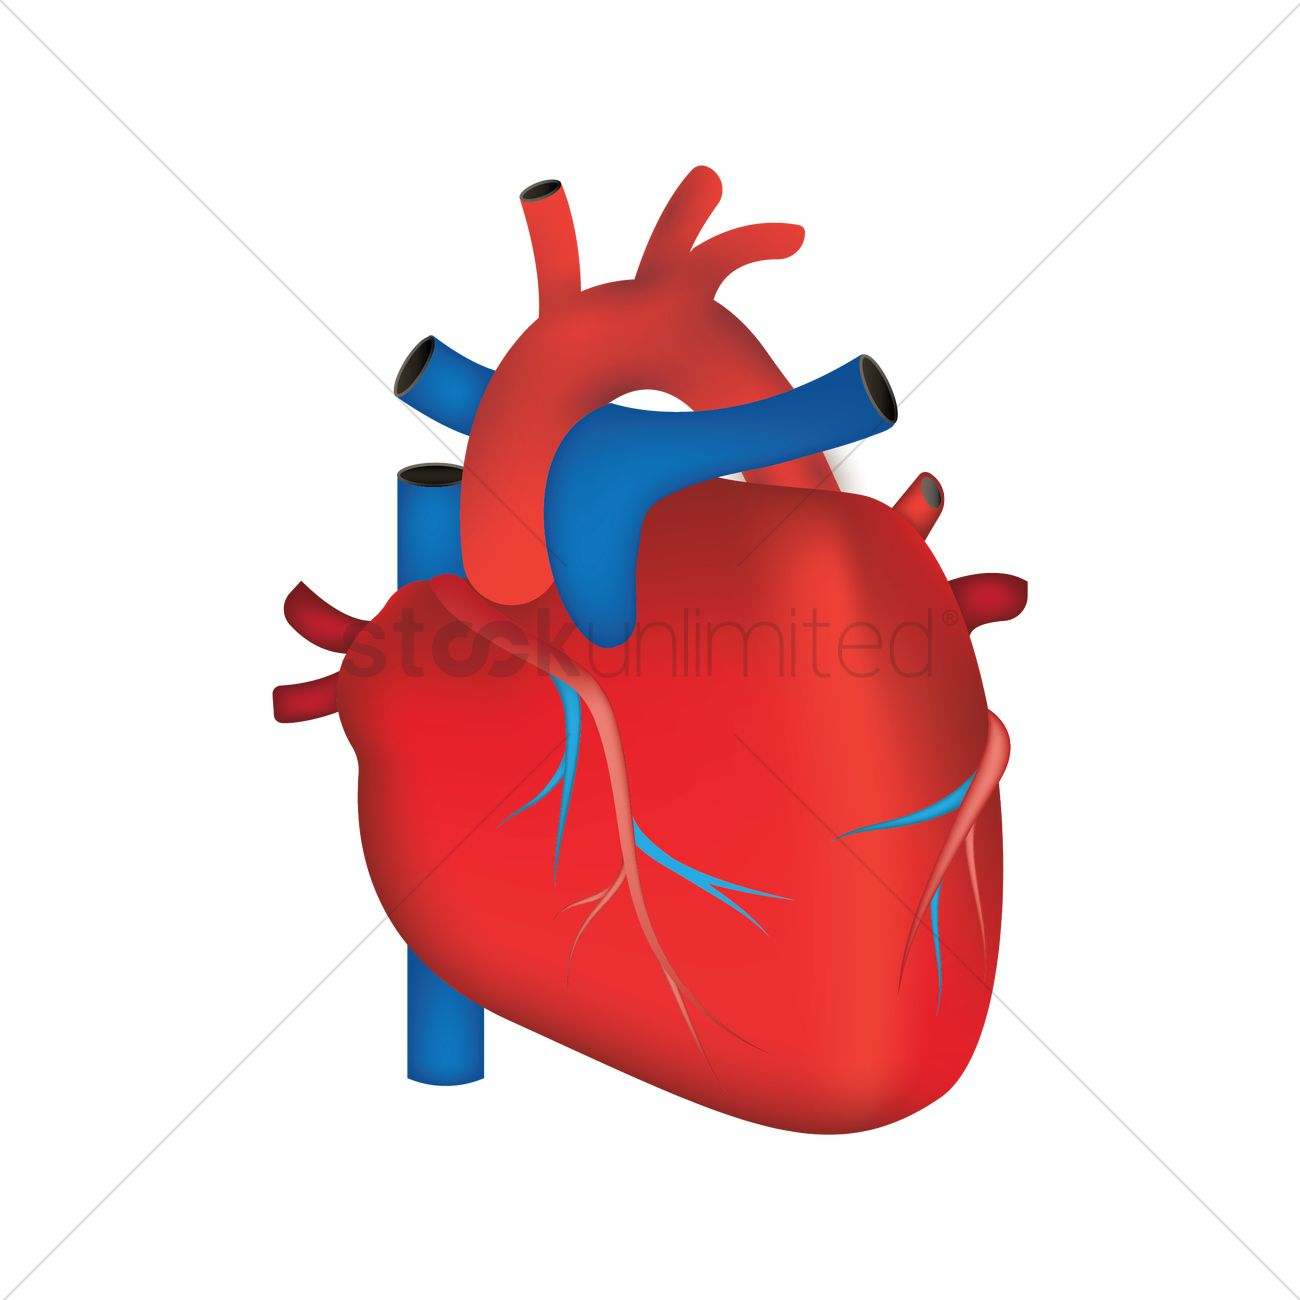 human heart vector image 1866359 stockunlimited rh stockunlimited com human heart vector art human heart vector icon